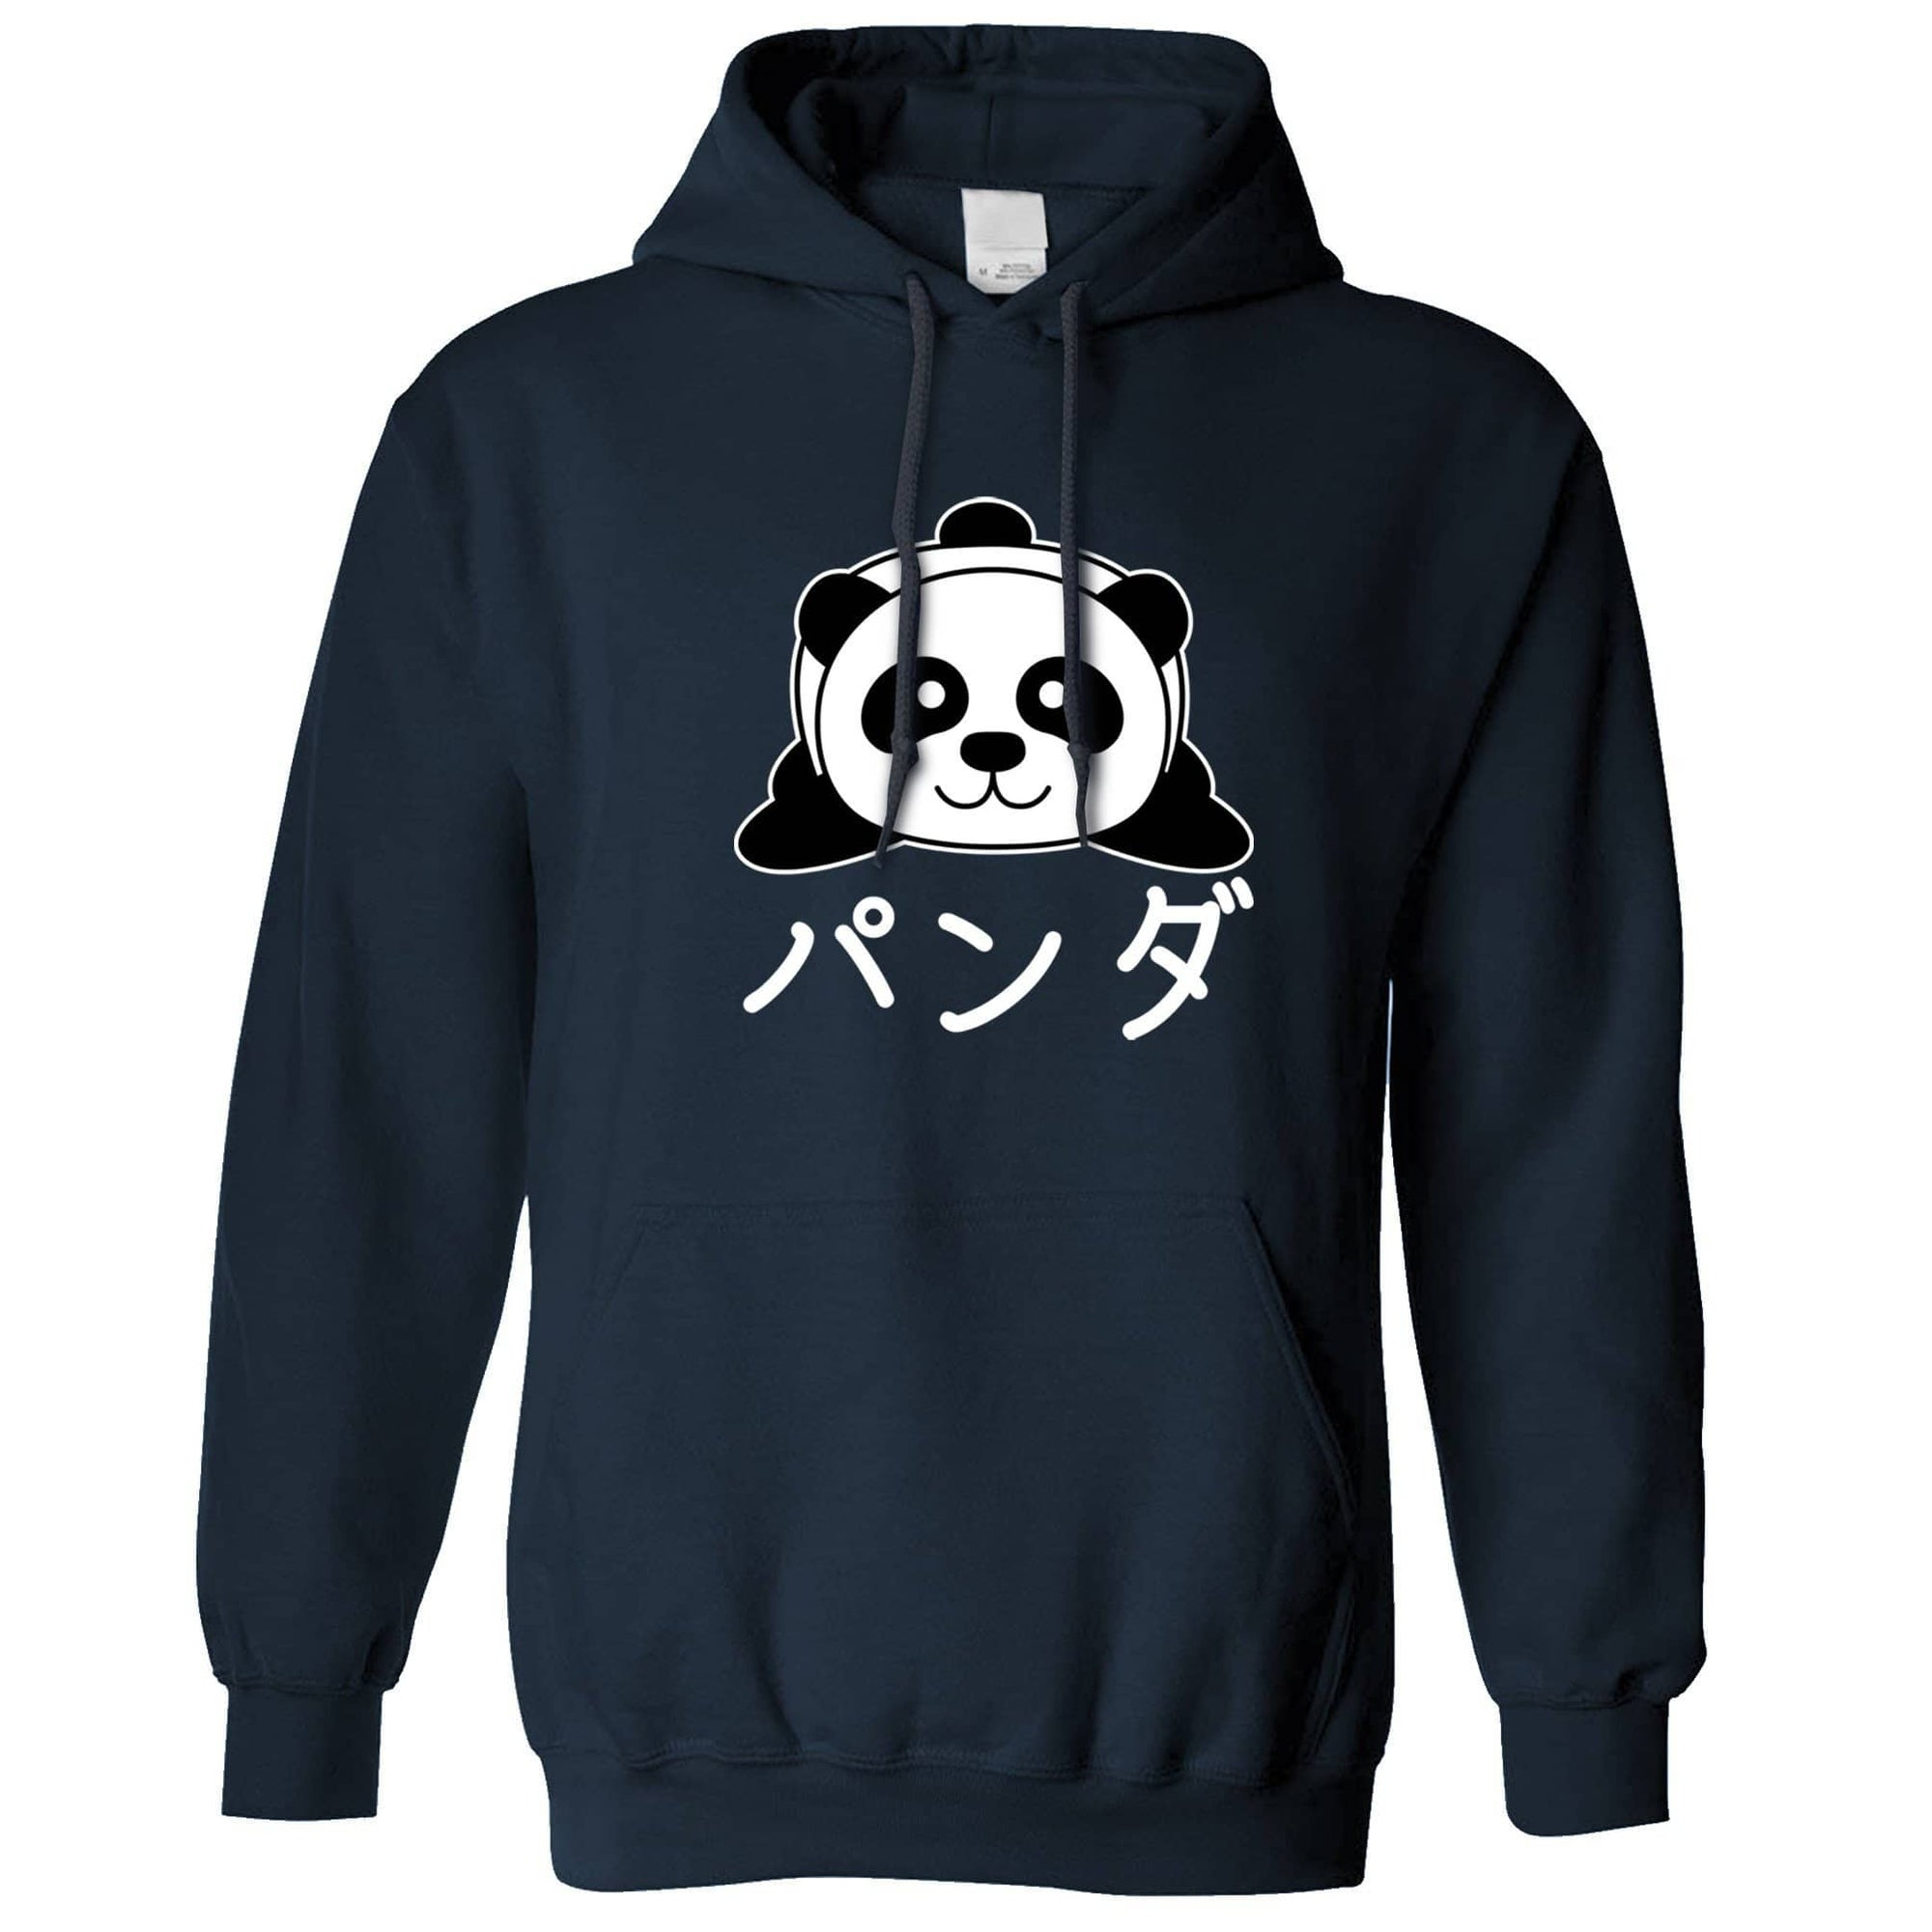 Cute Hoodie Japanese Baby Panda With Text Hooded Jumper